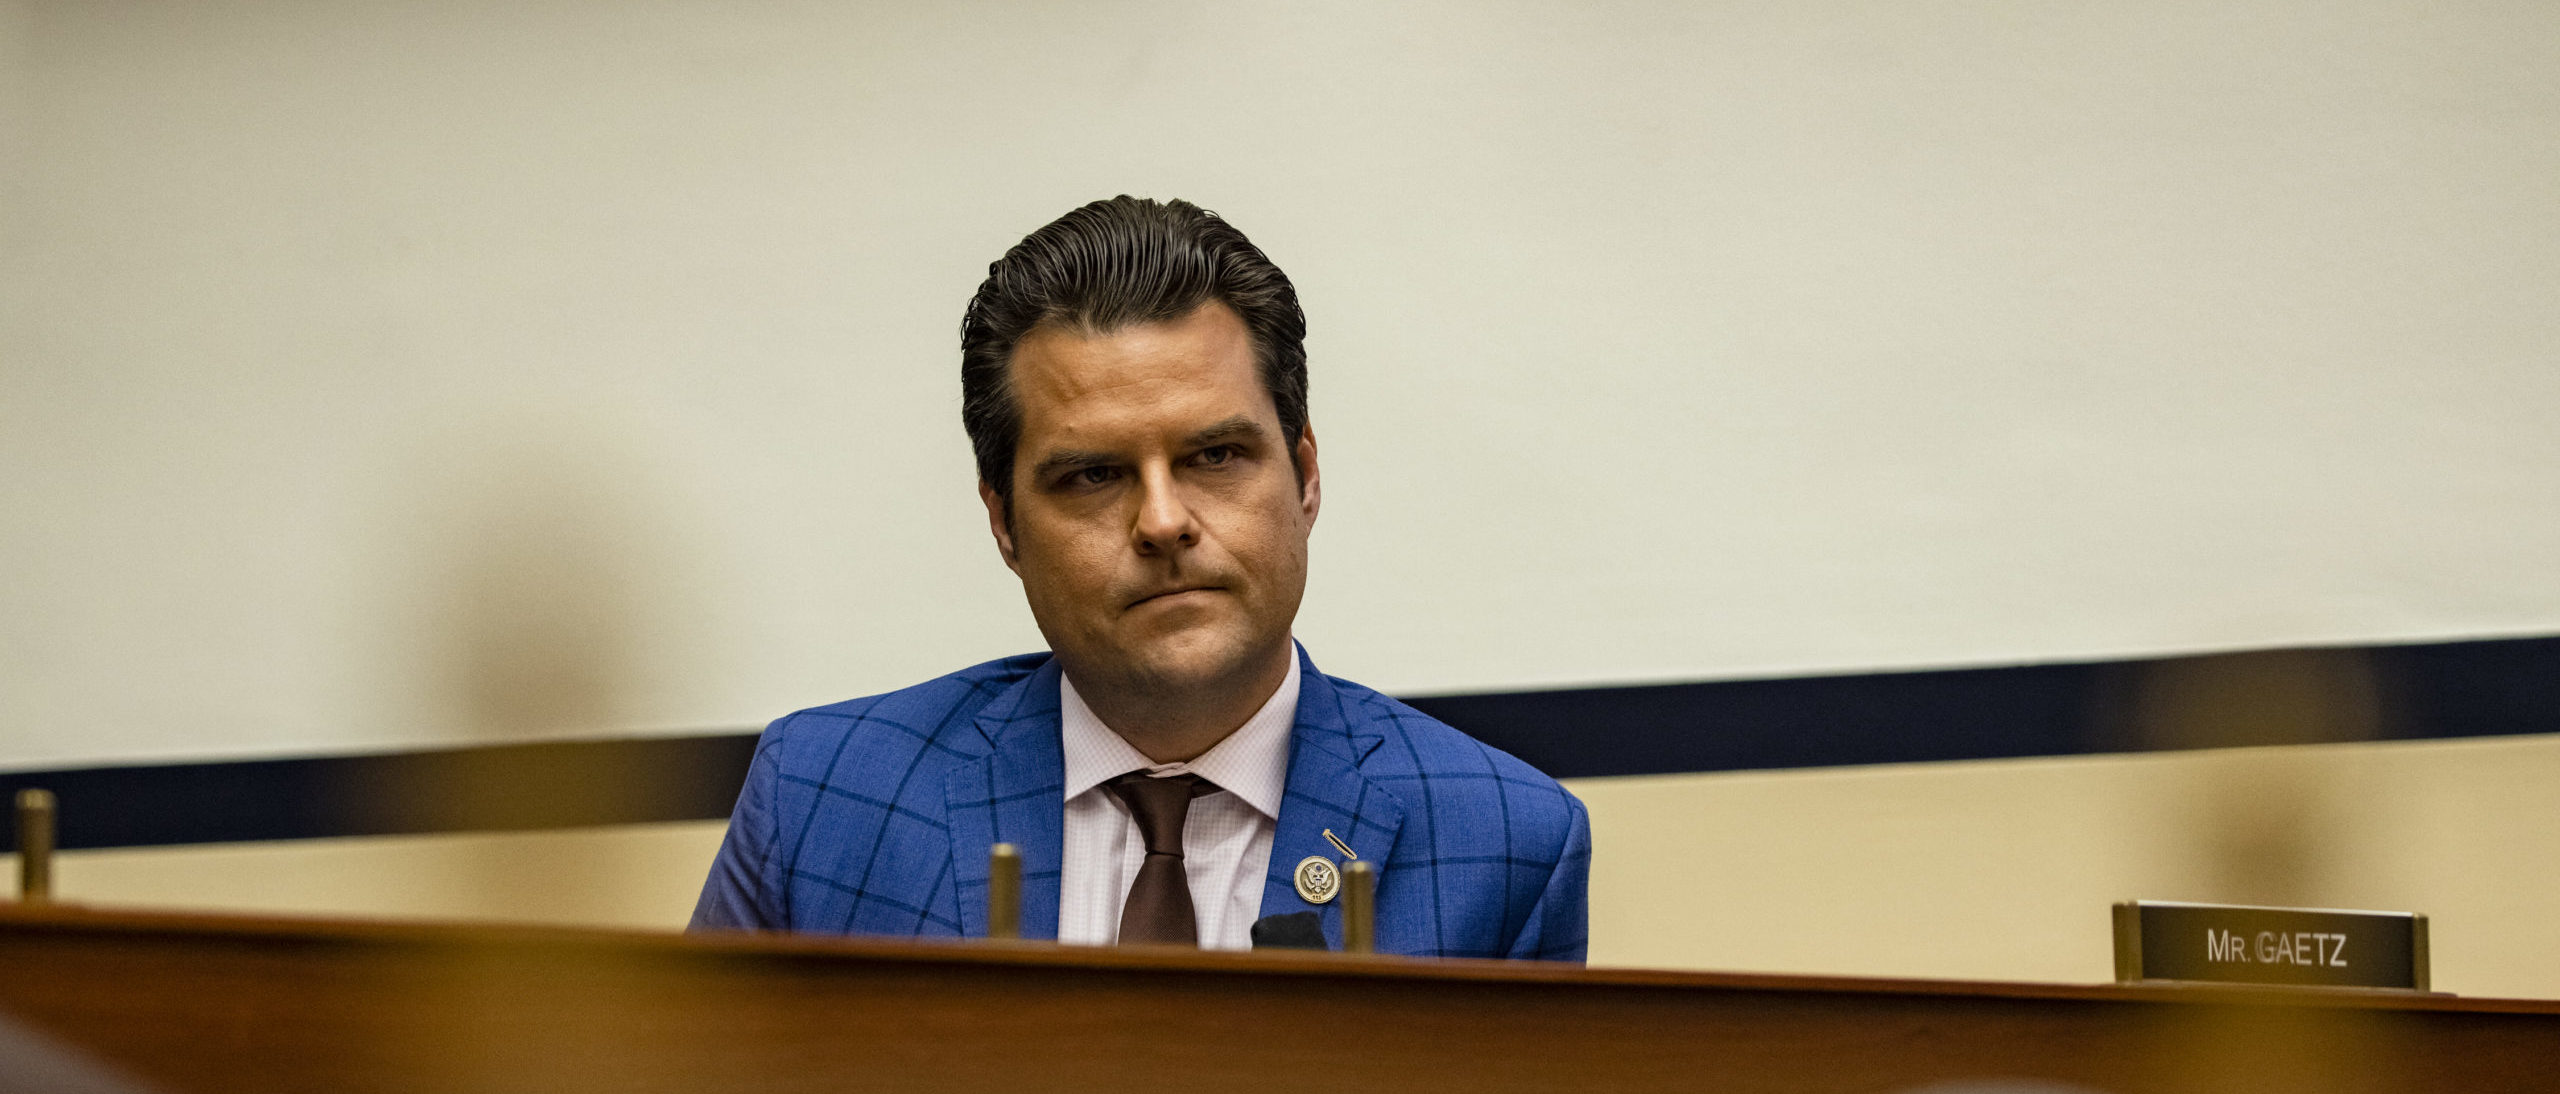 Matt Gaetz scaled e1610568782285.